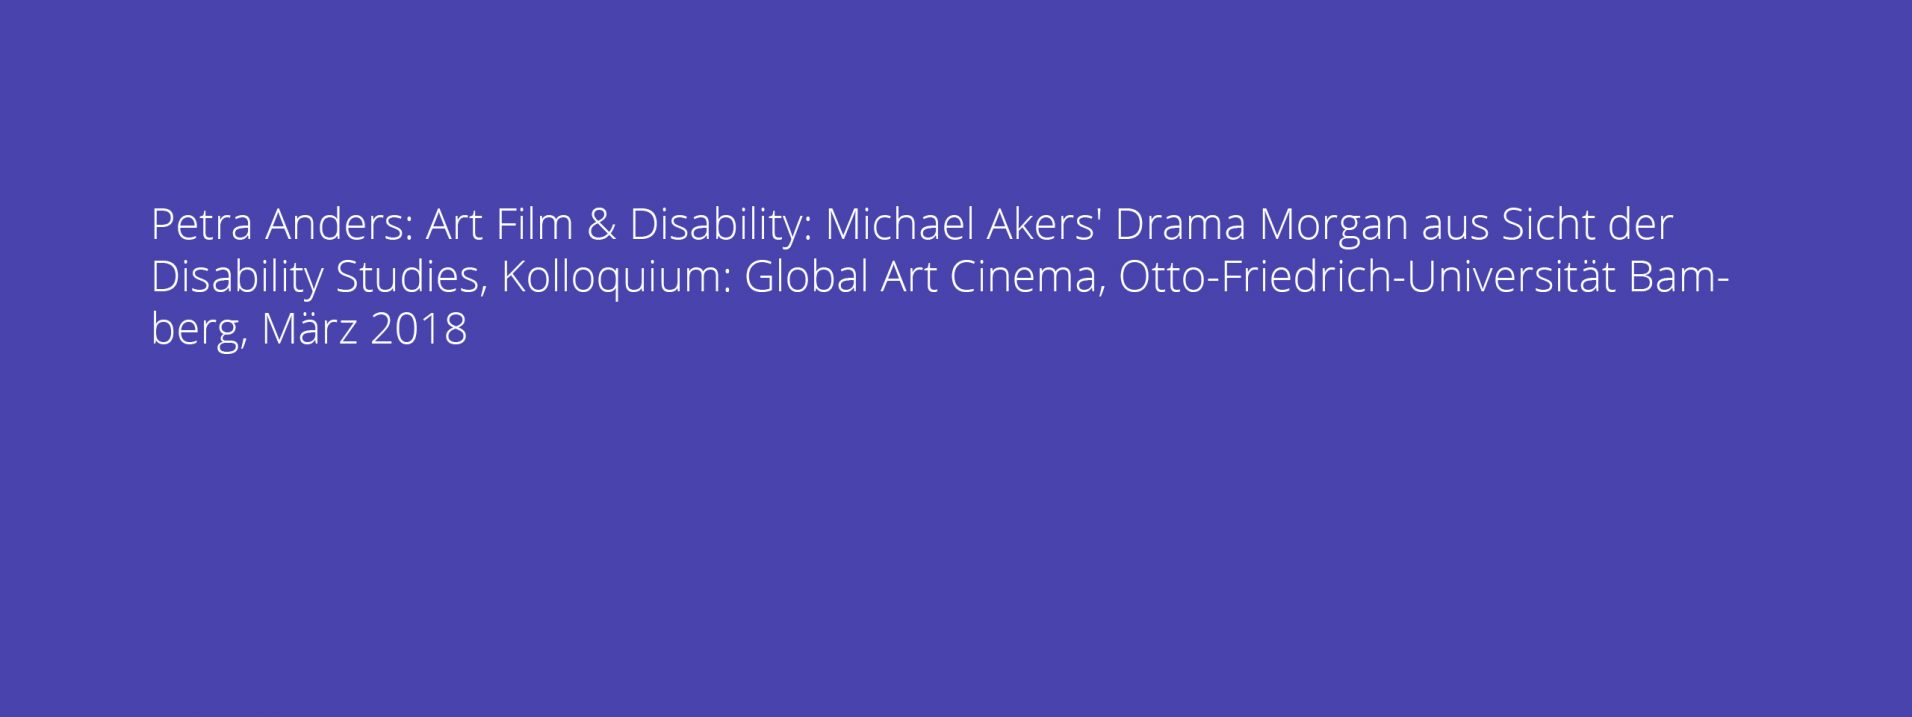 Petra Anders: Art Film & Disability: Michael Akers' Drama Morgan aus Sicht der Disability Studies, Kolloquium: Global Art Cinema, Otto-Friedrich-Universität Bamberg, März 2018